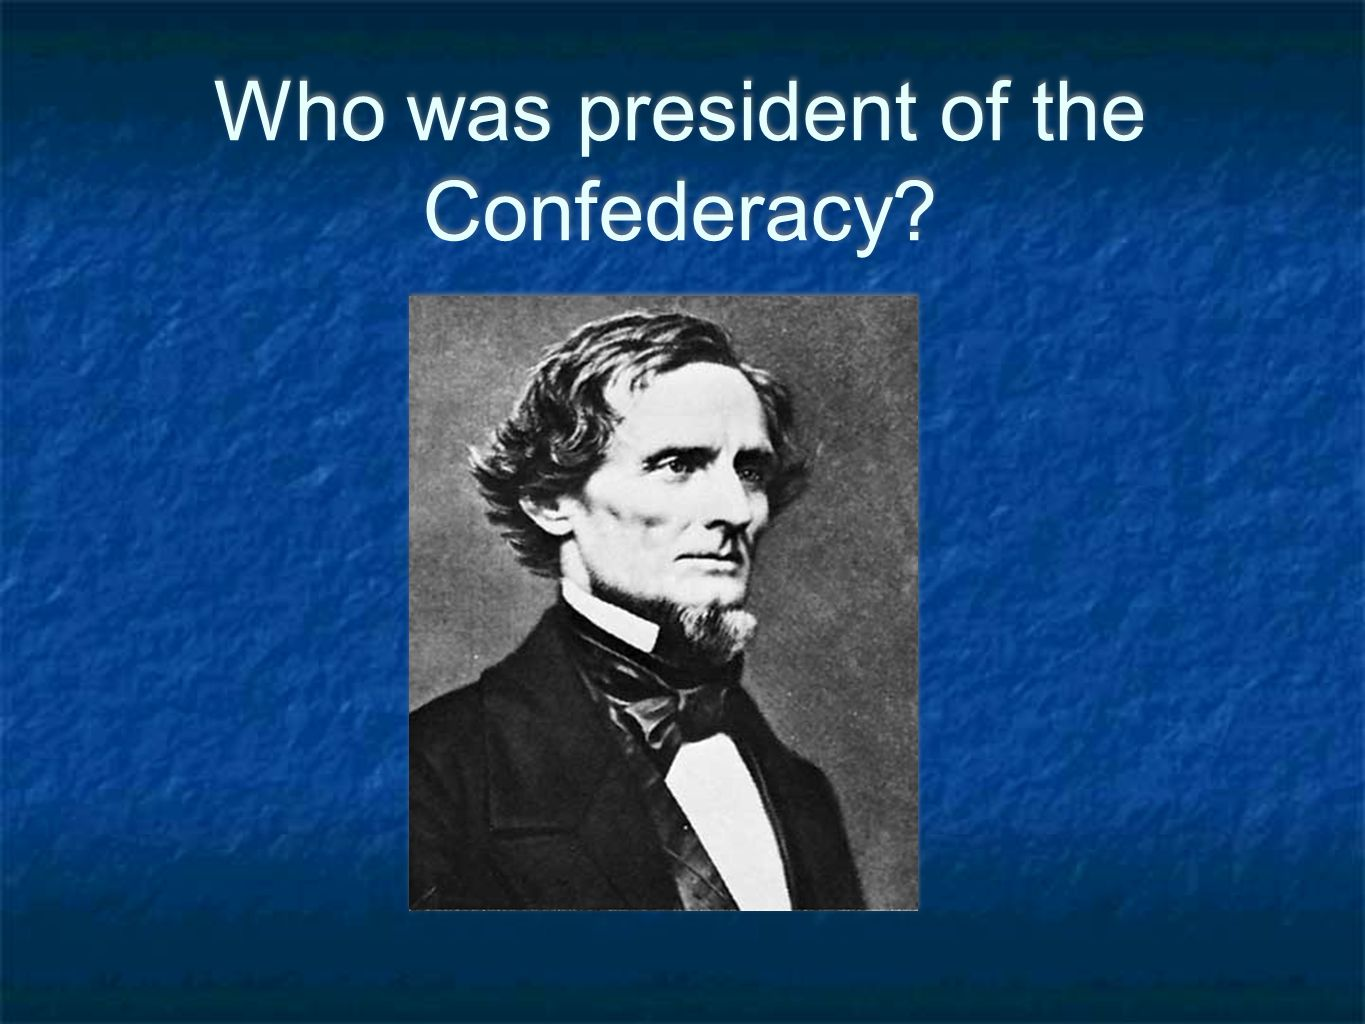 Who was president of the Confederacy